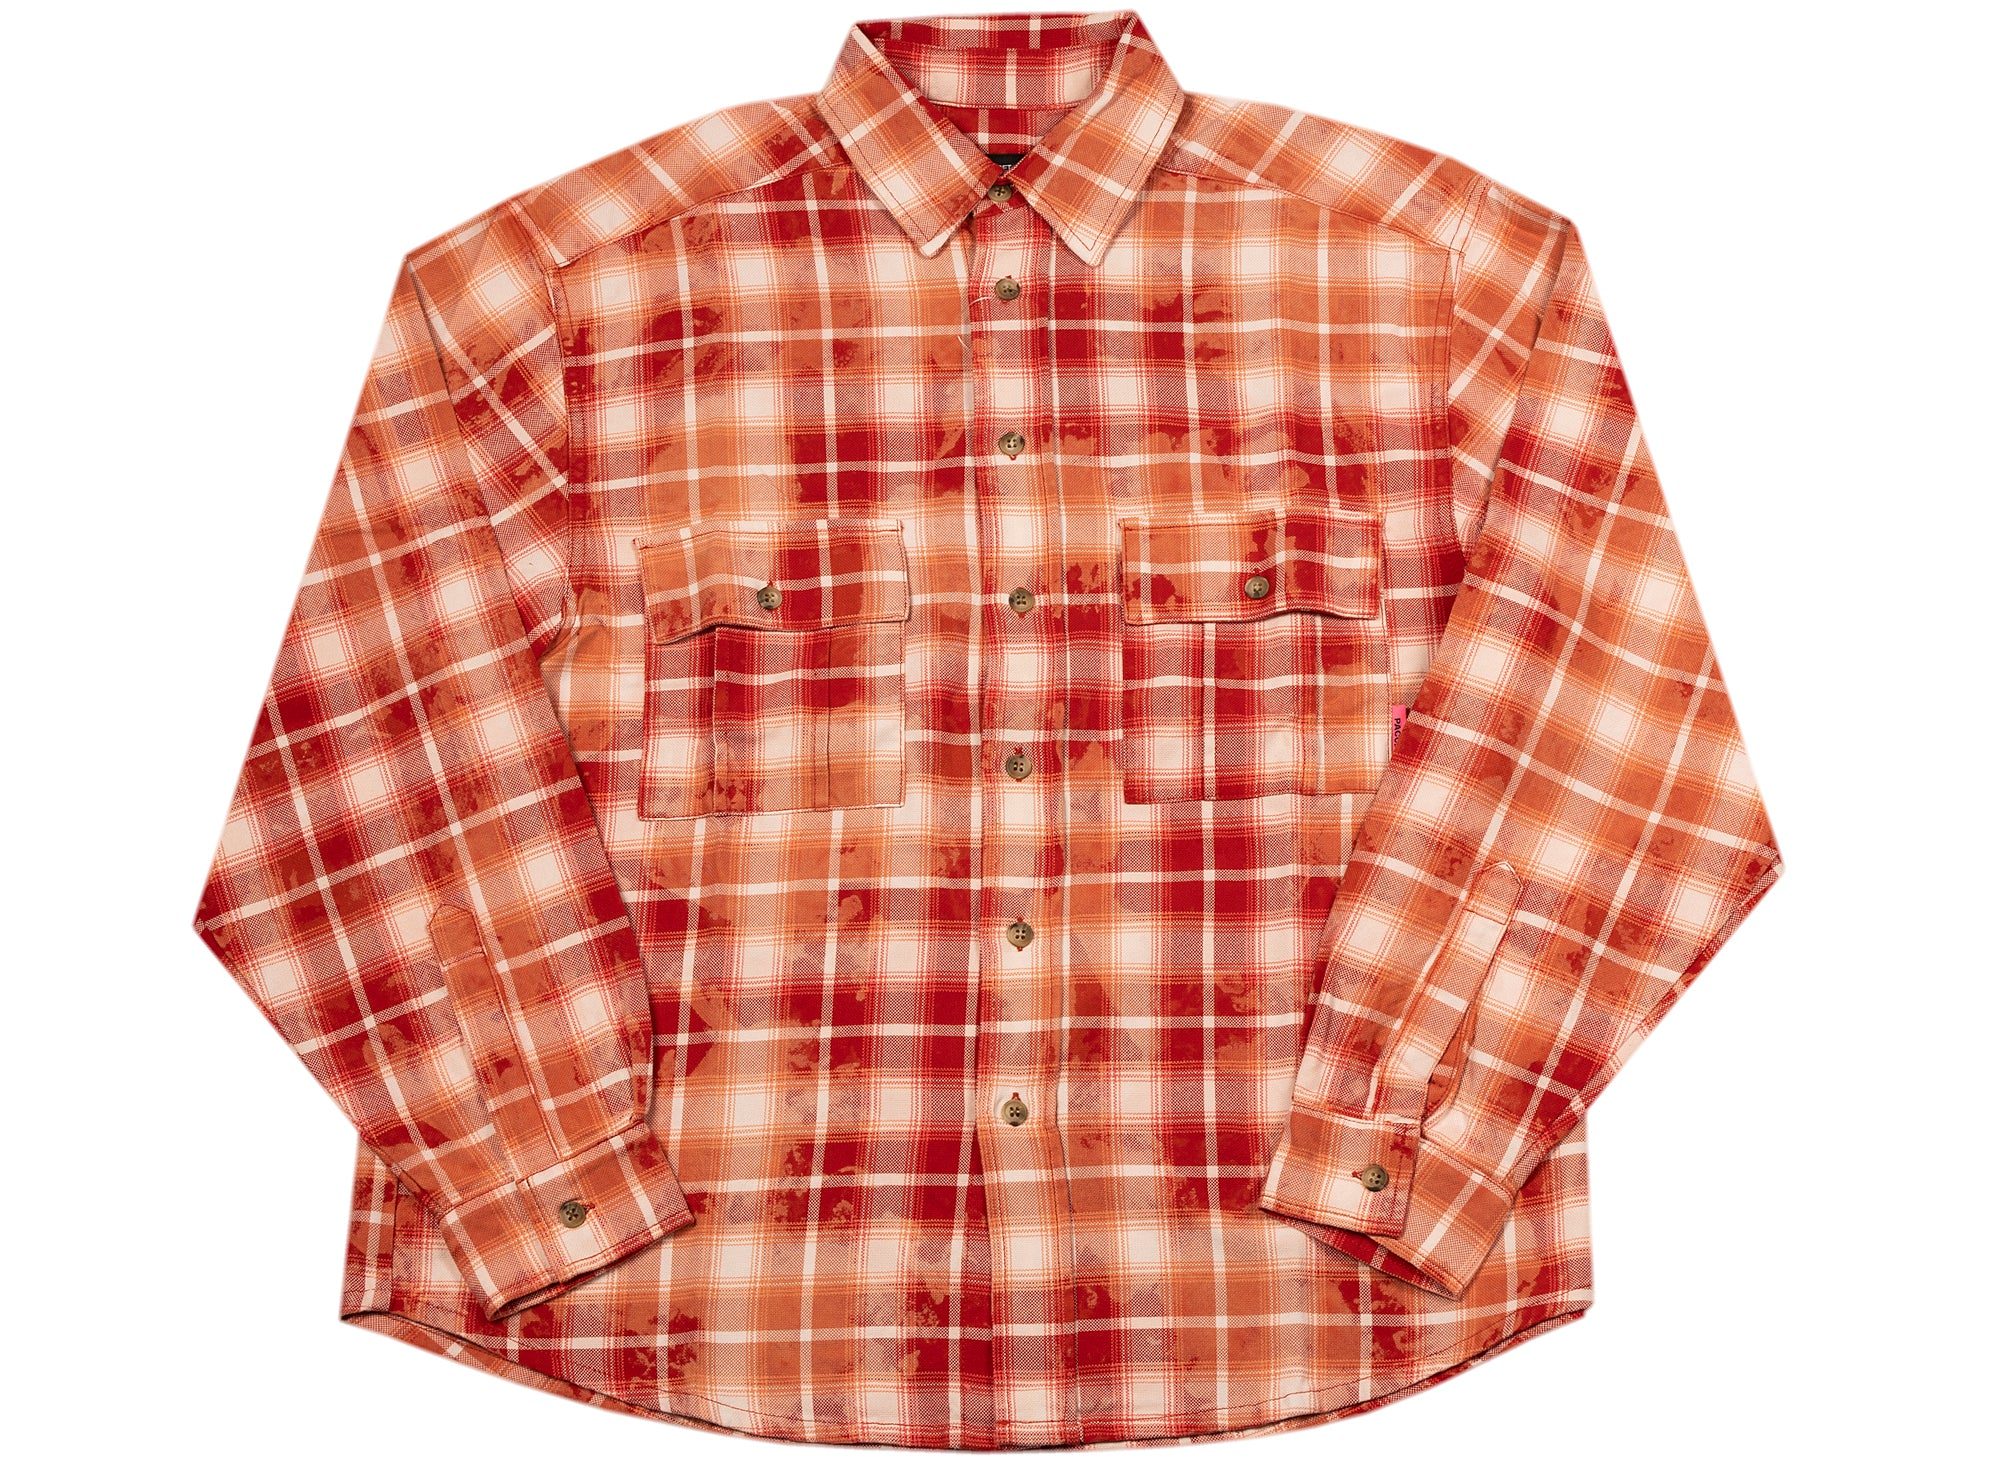 Rassvet (PACCBET) Bleached Check Shirt in Red